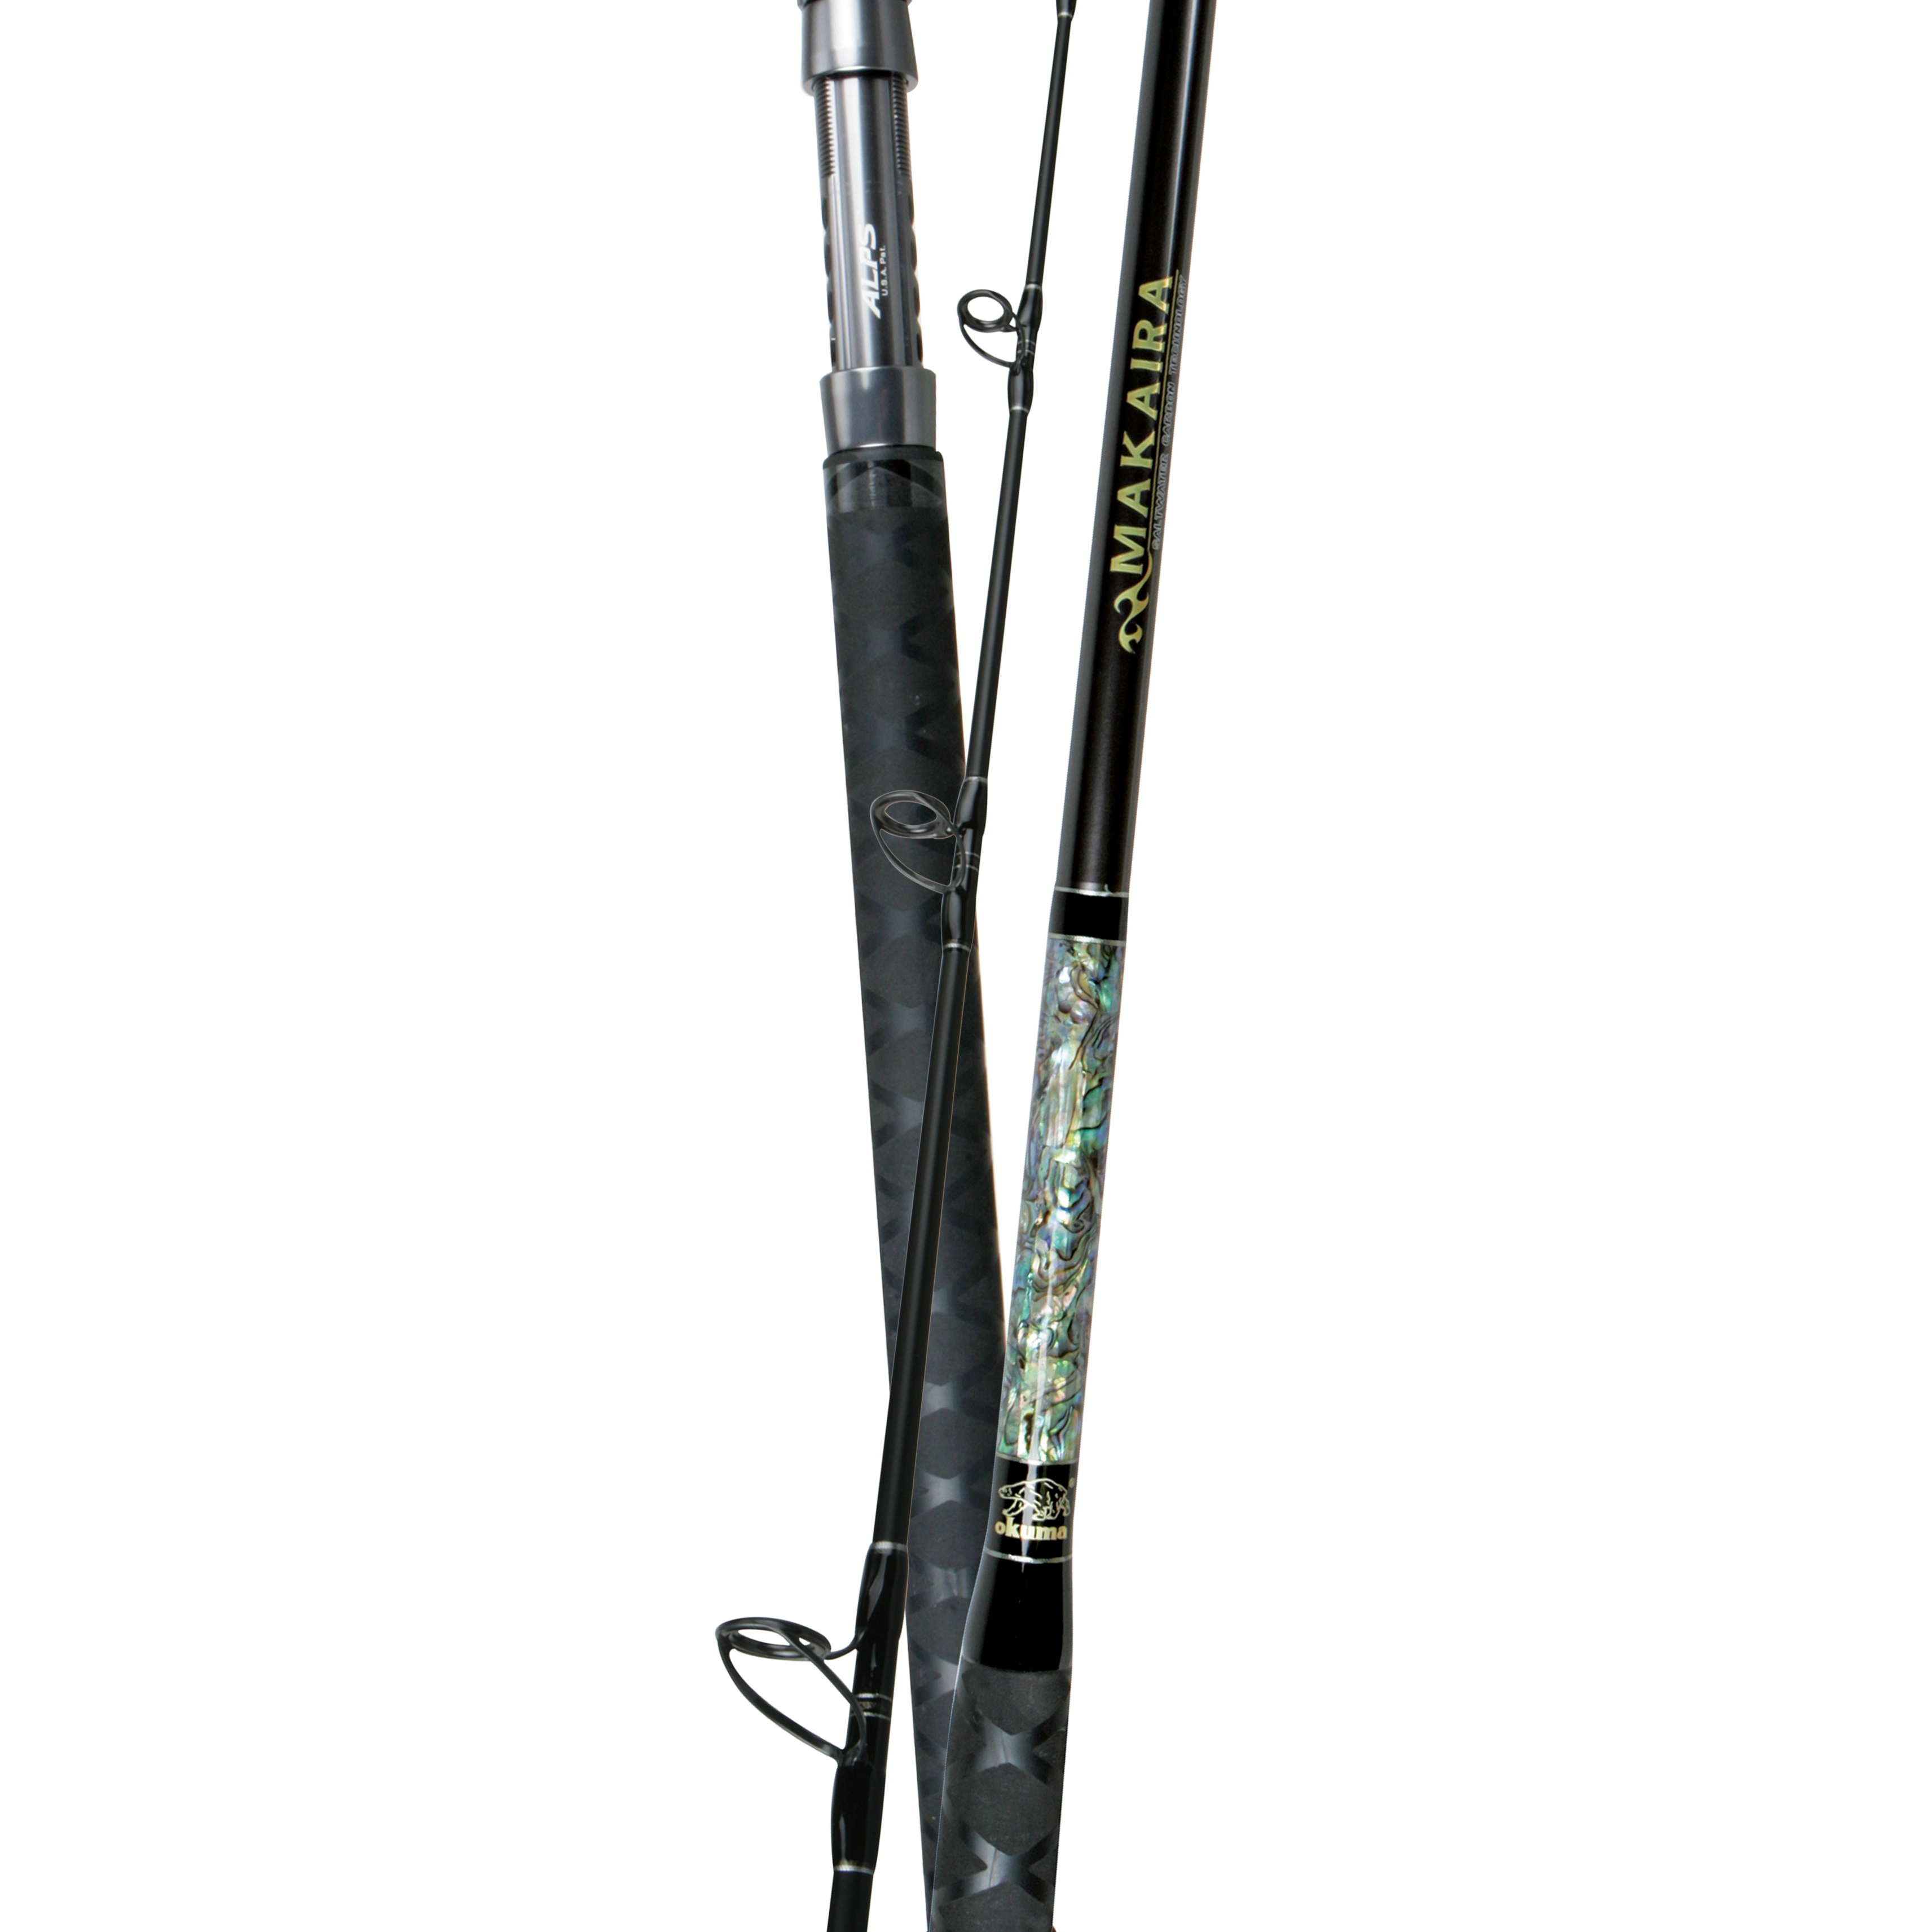 Fishing rods and reels makaira saltwater rod for Offshore fishing tackle